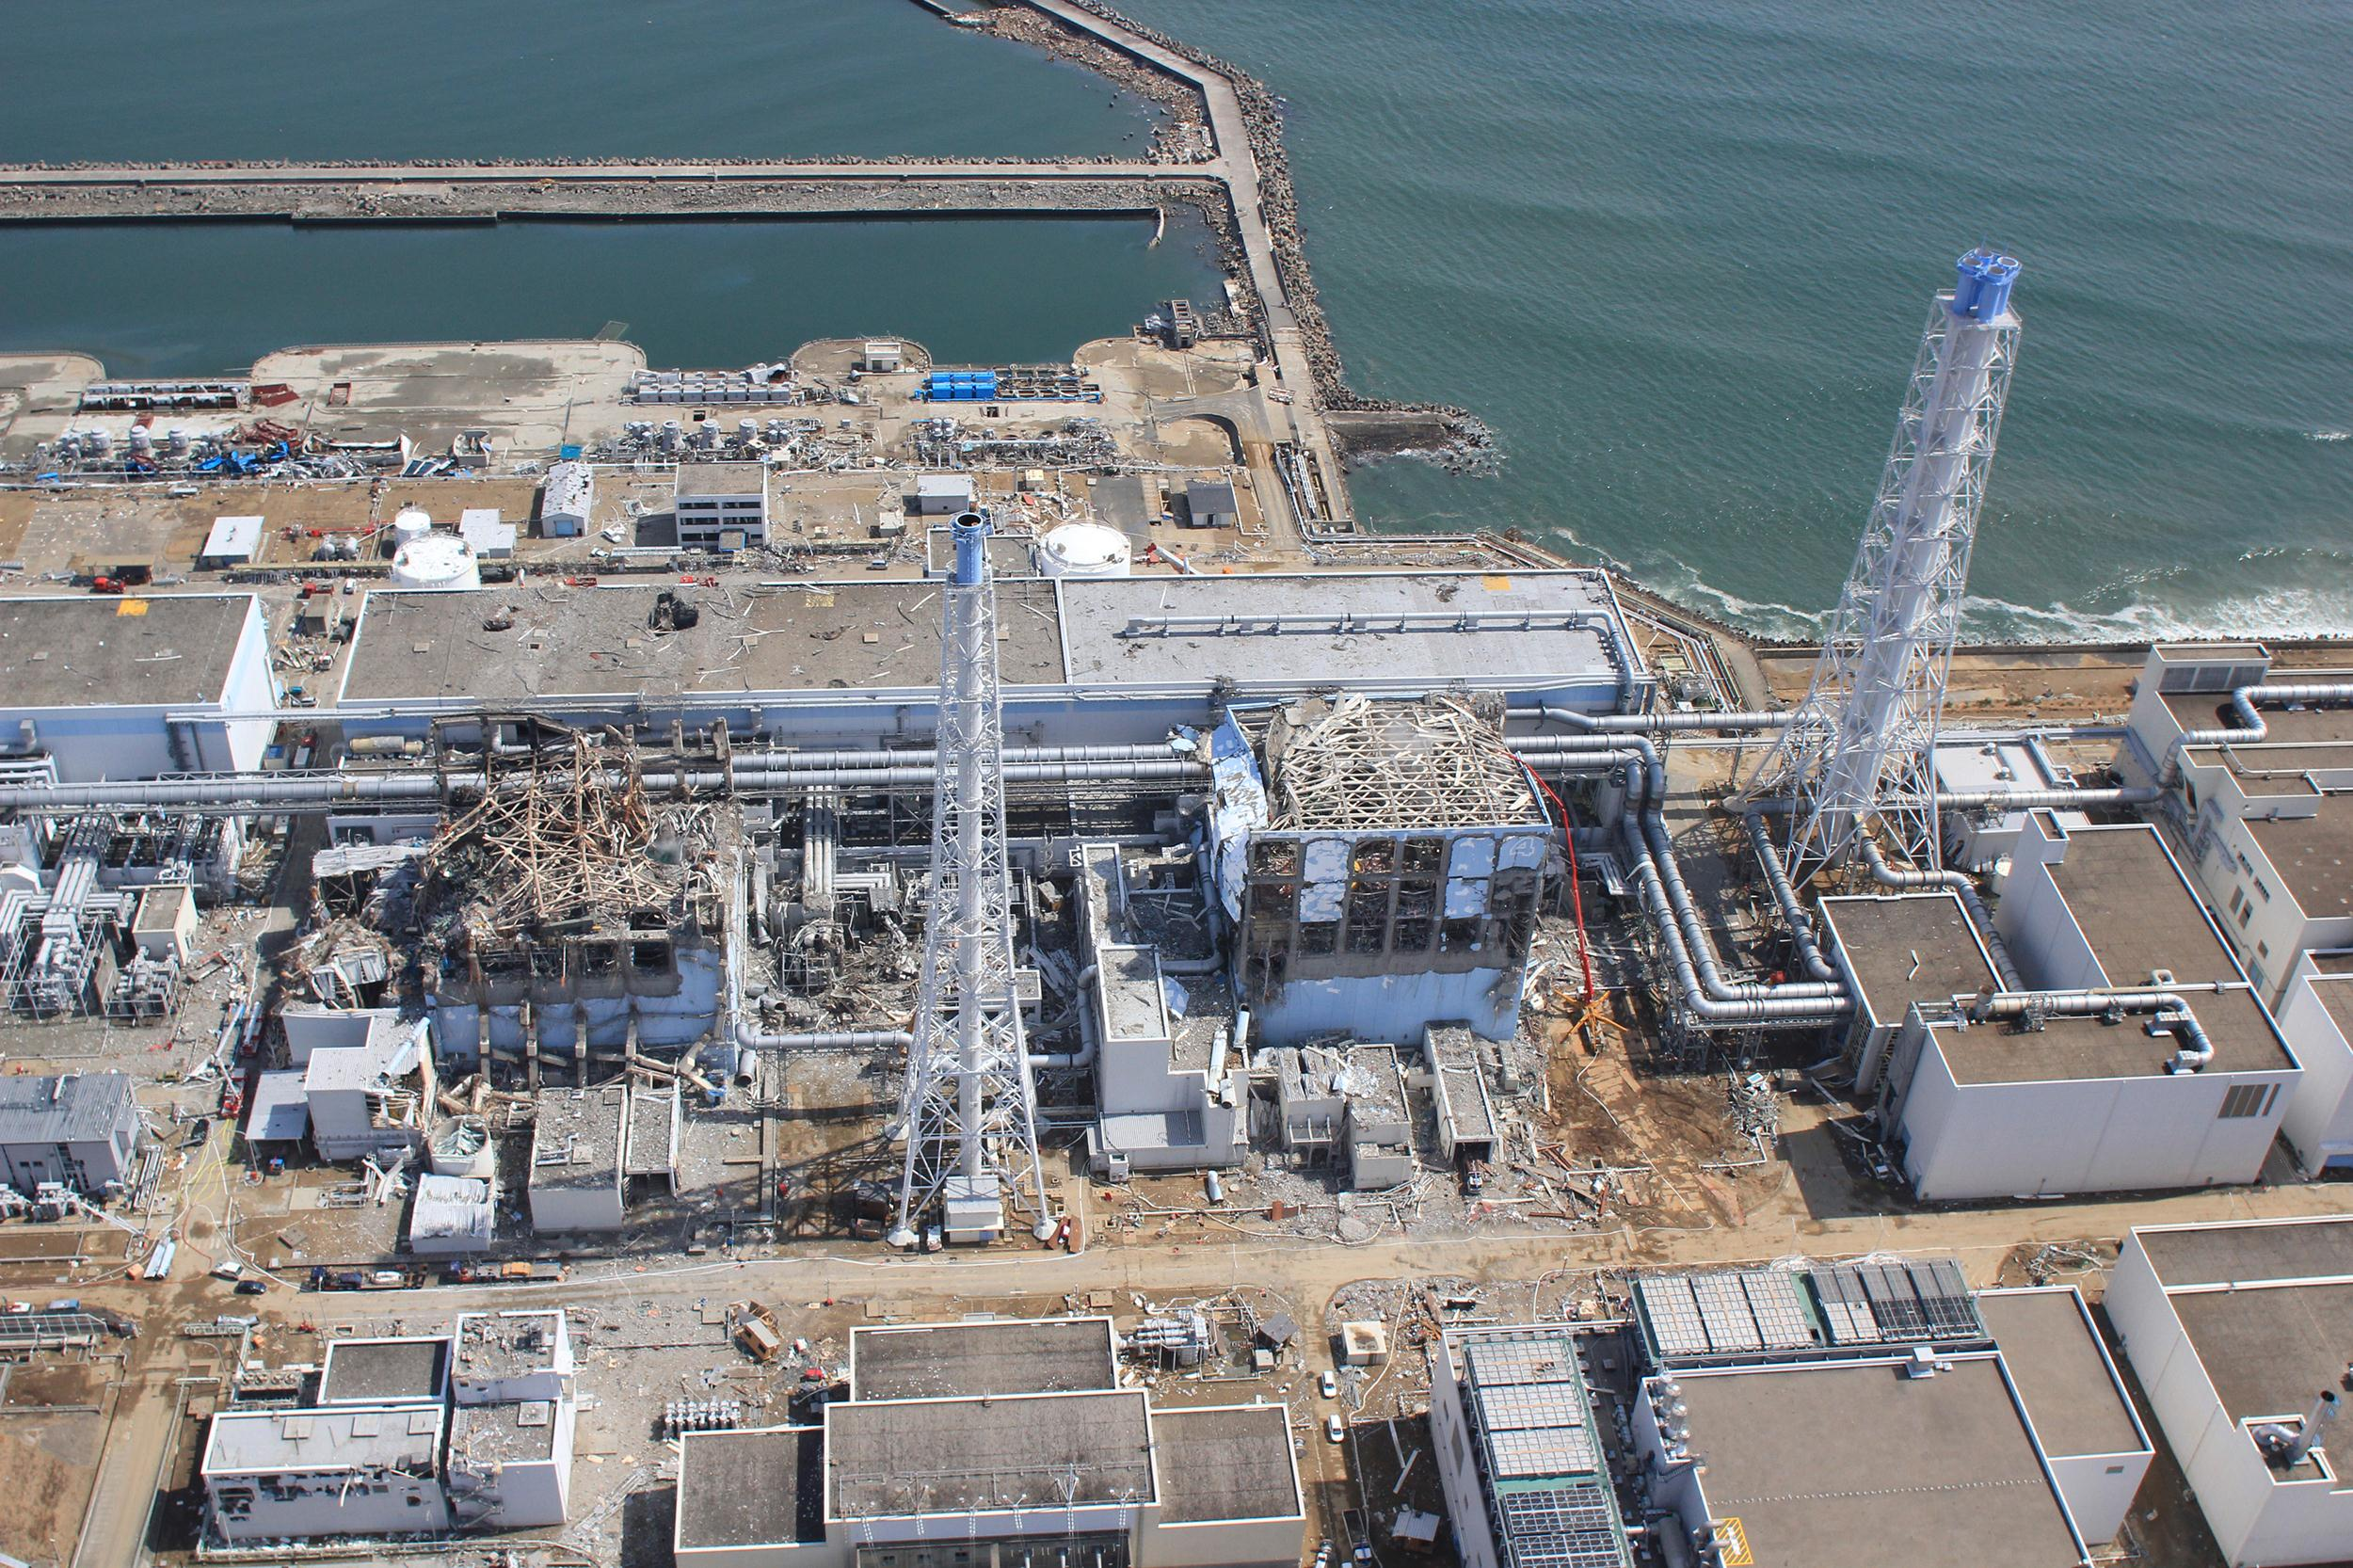 Image: An aerial view of the Fukushima Daiichi Nuclear Power Station is seen in Fukushima Prefecture